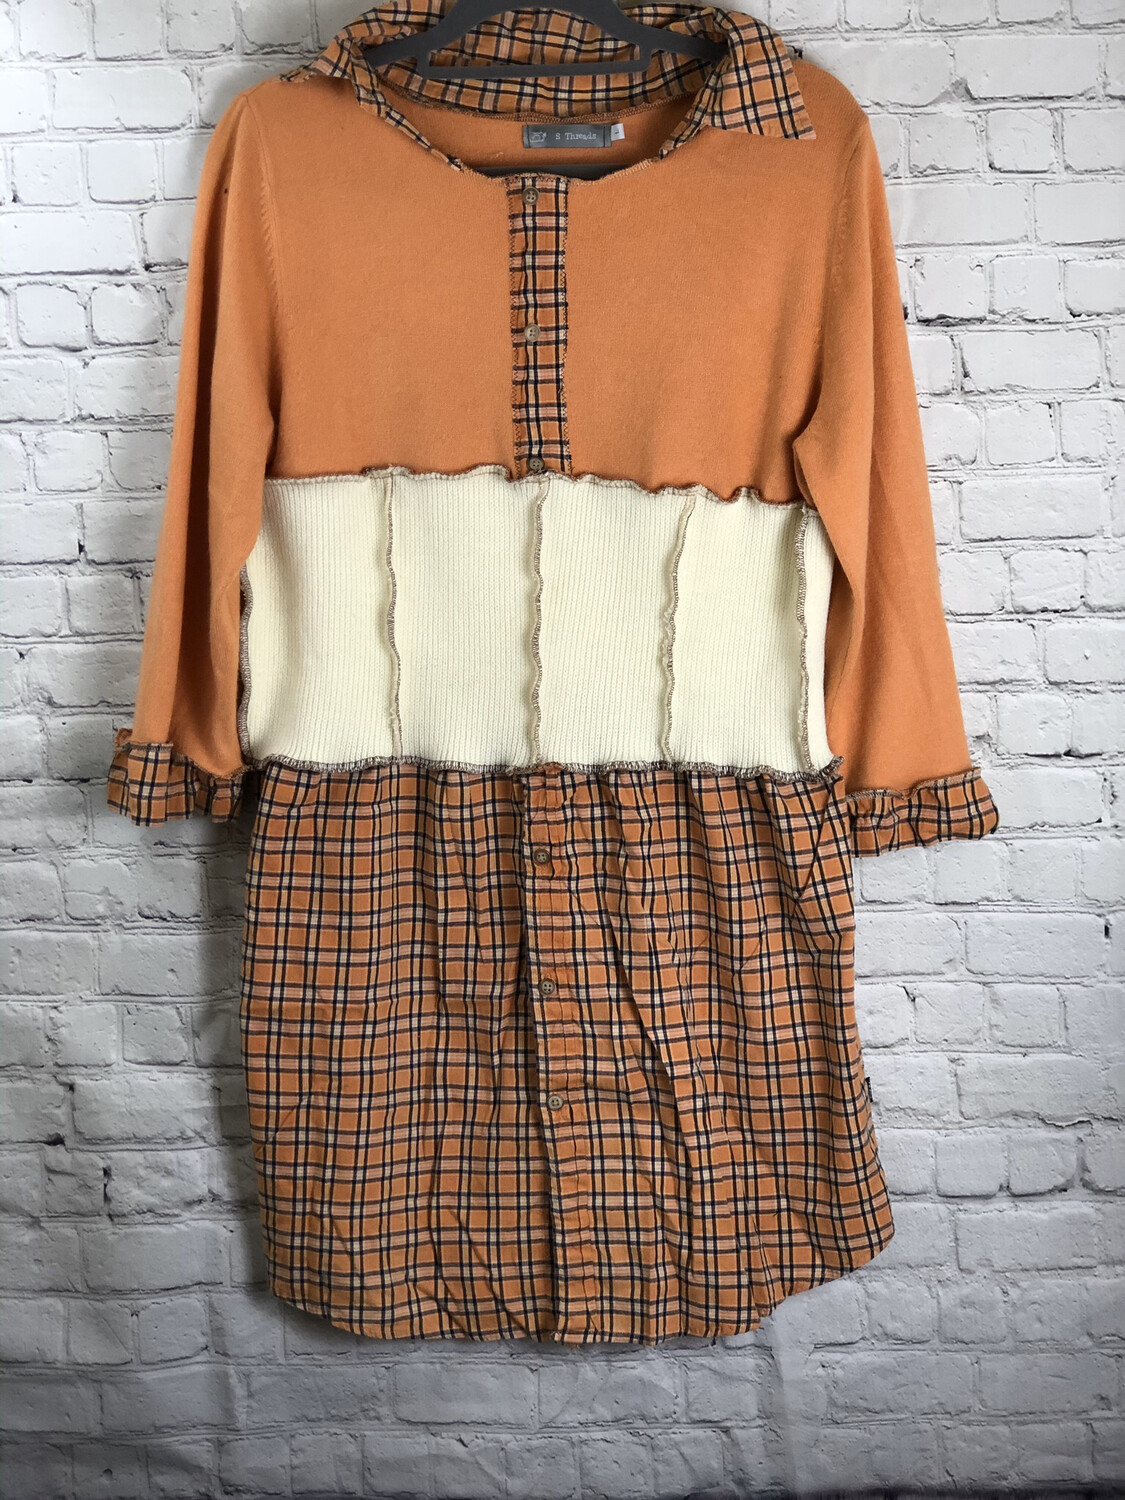 Orange Cream Sweater Dress